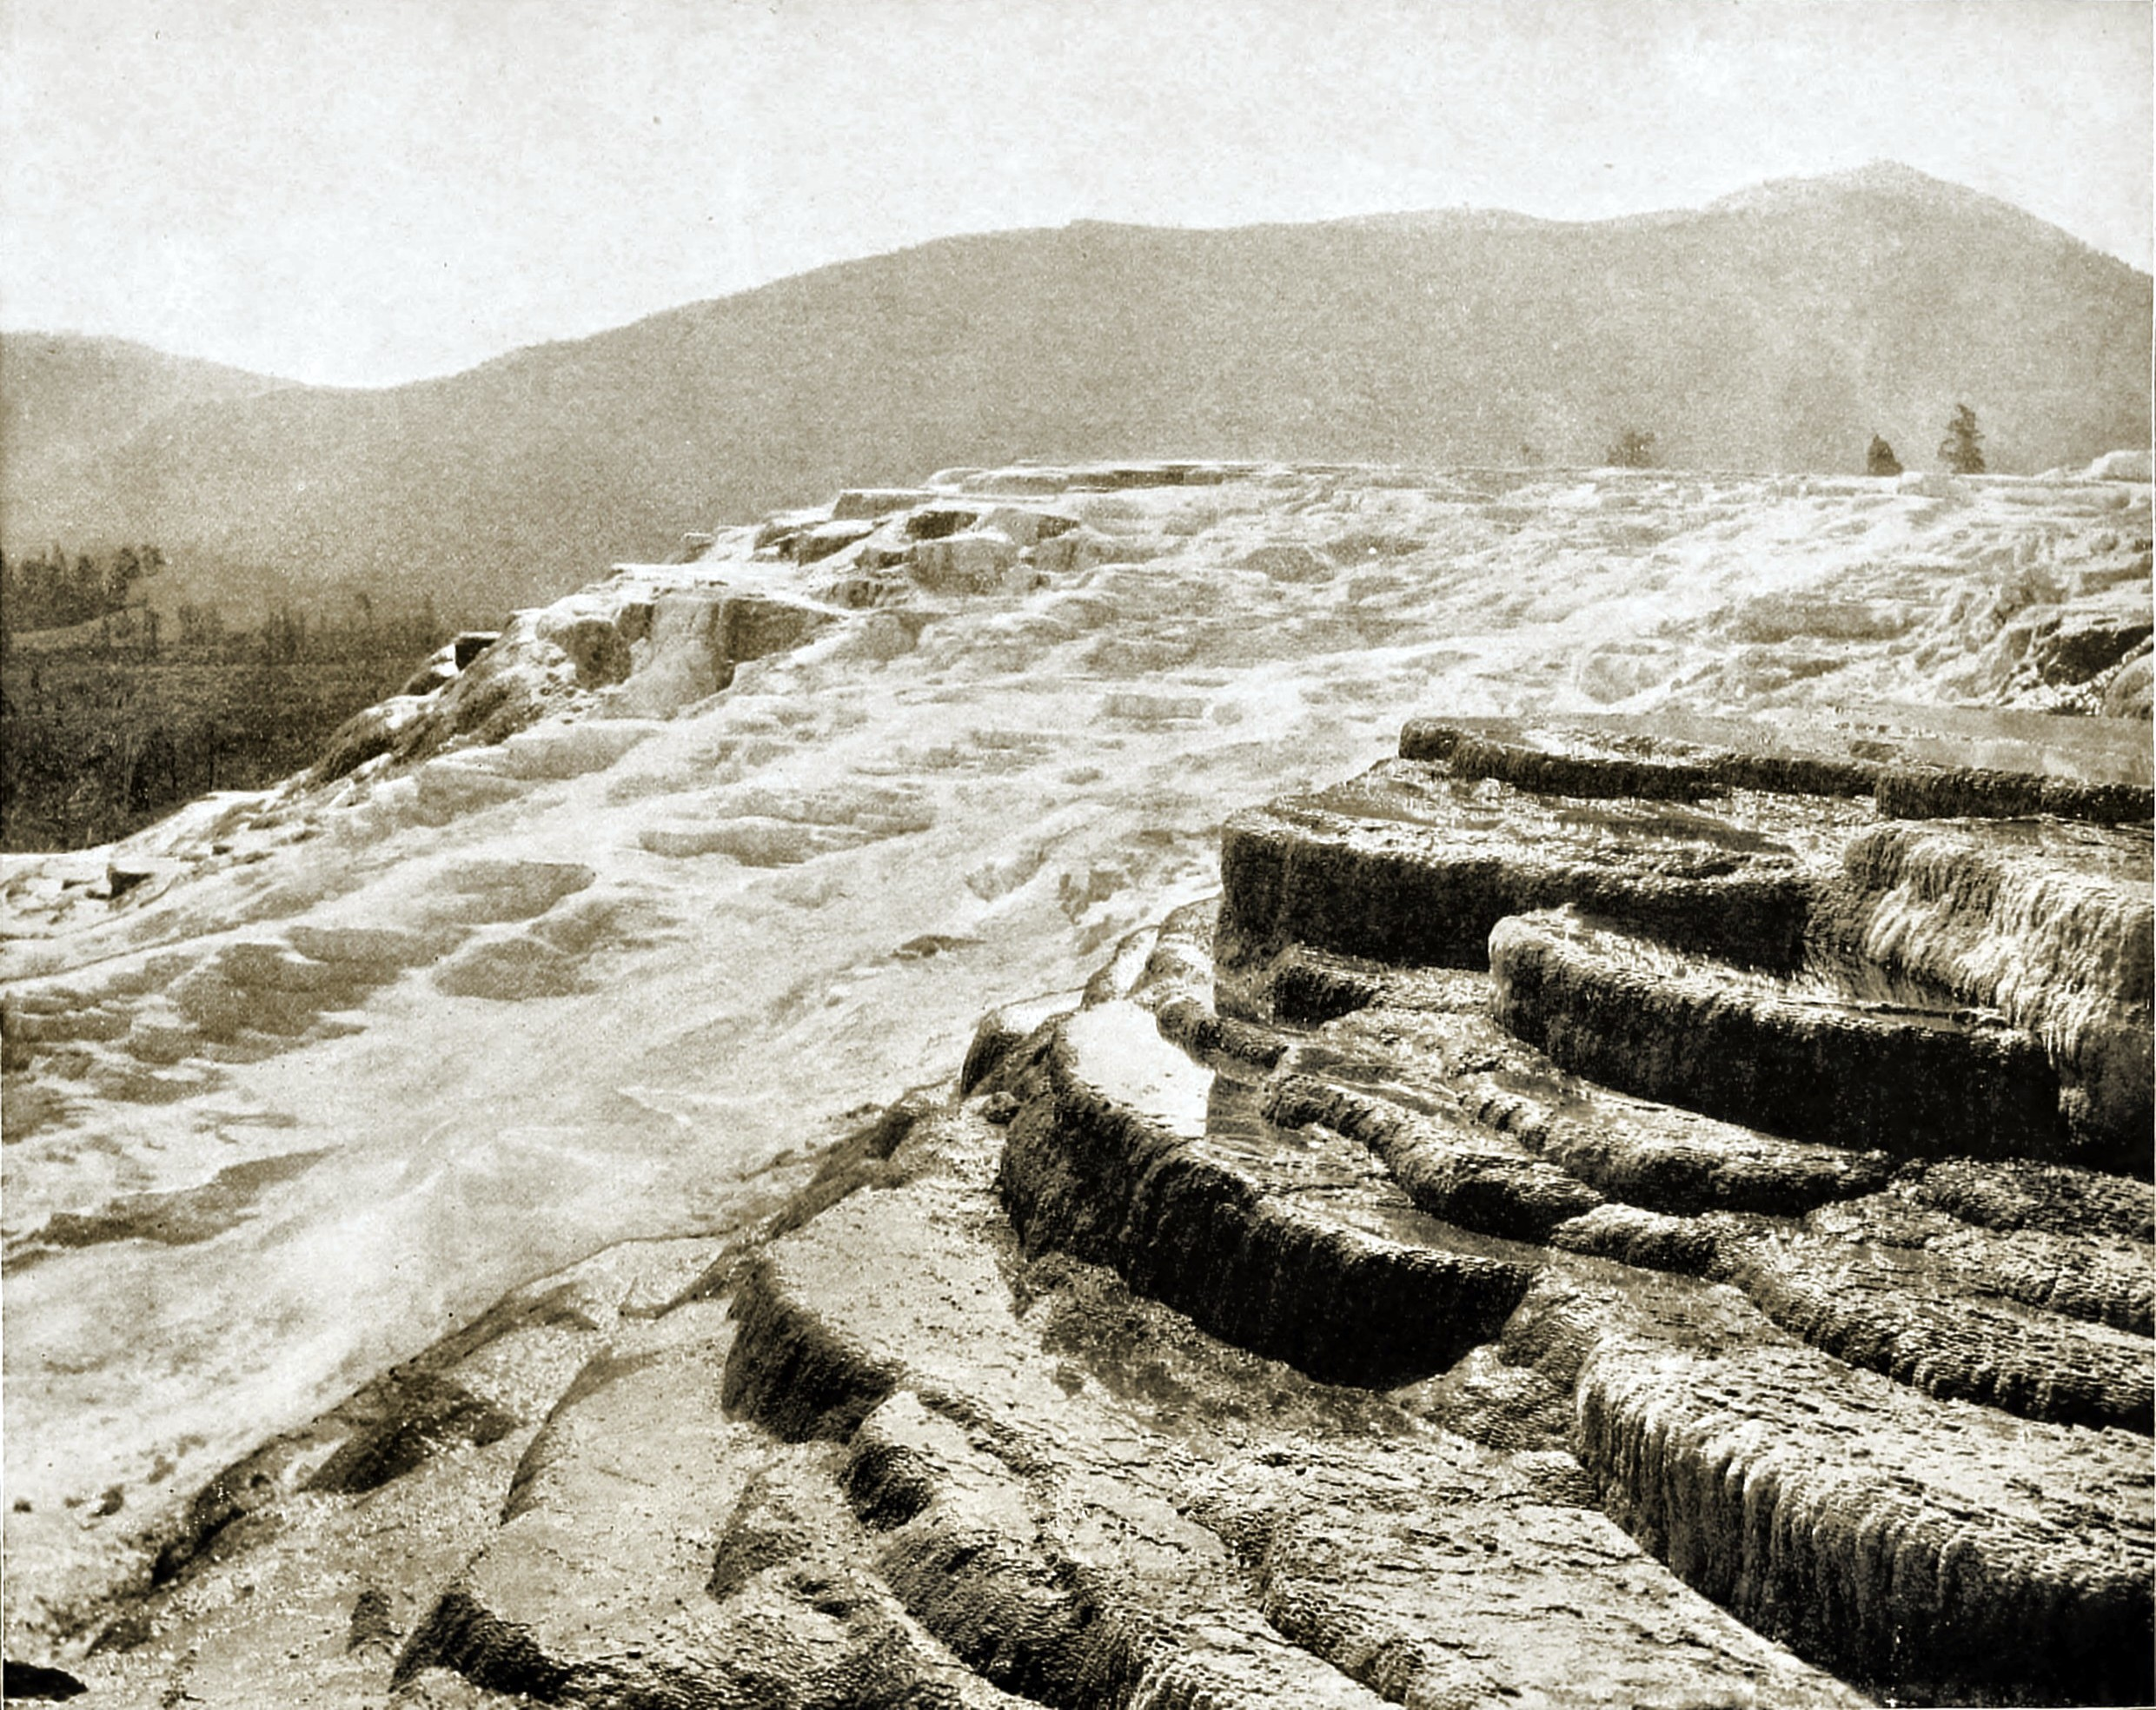 Mammoth Hot Springs, Yellowstone National Park, USA about 1892